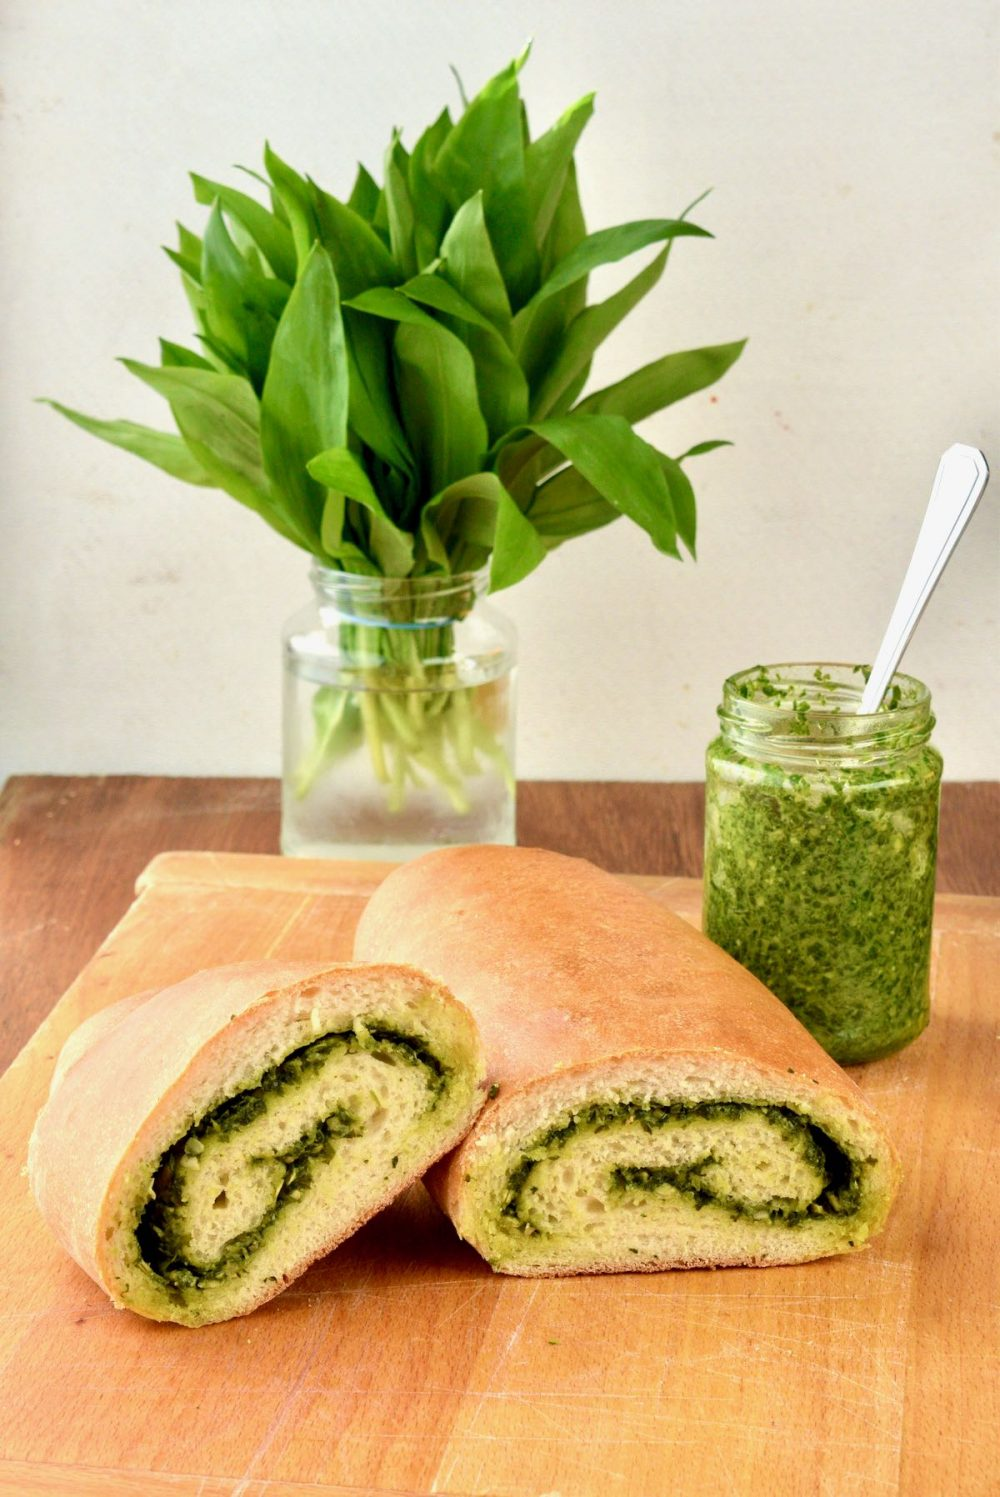 The baked loaf has a golden crust and is cut open to reveal the green swirl of pesto inside